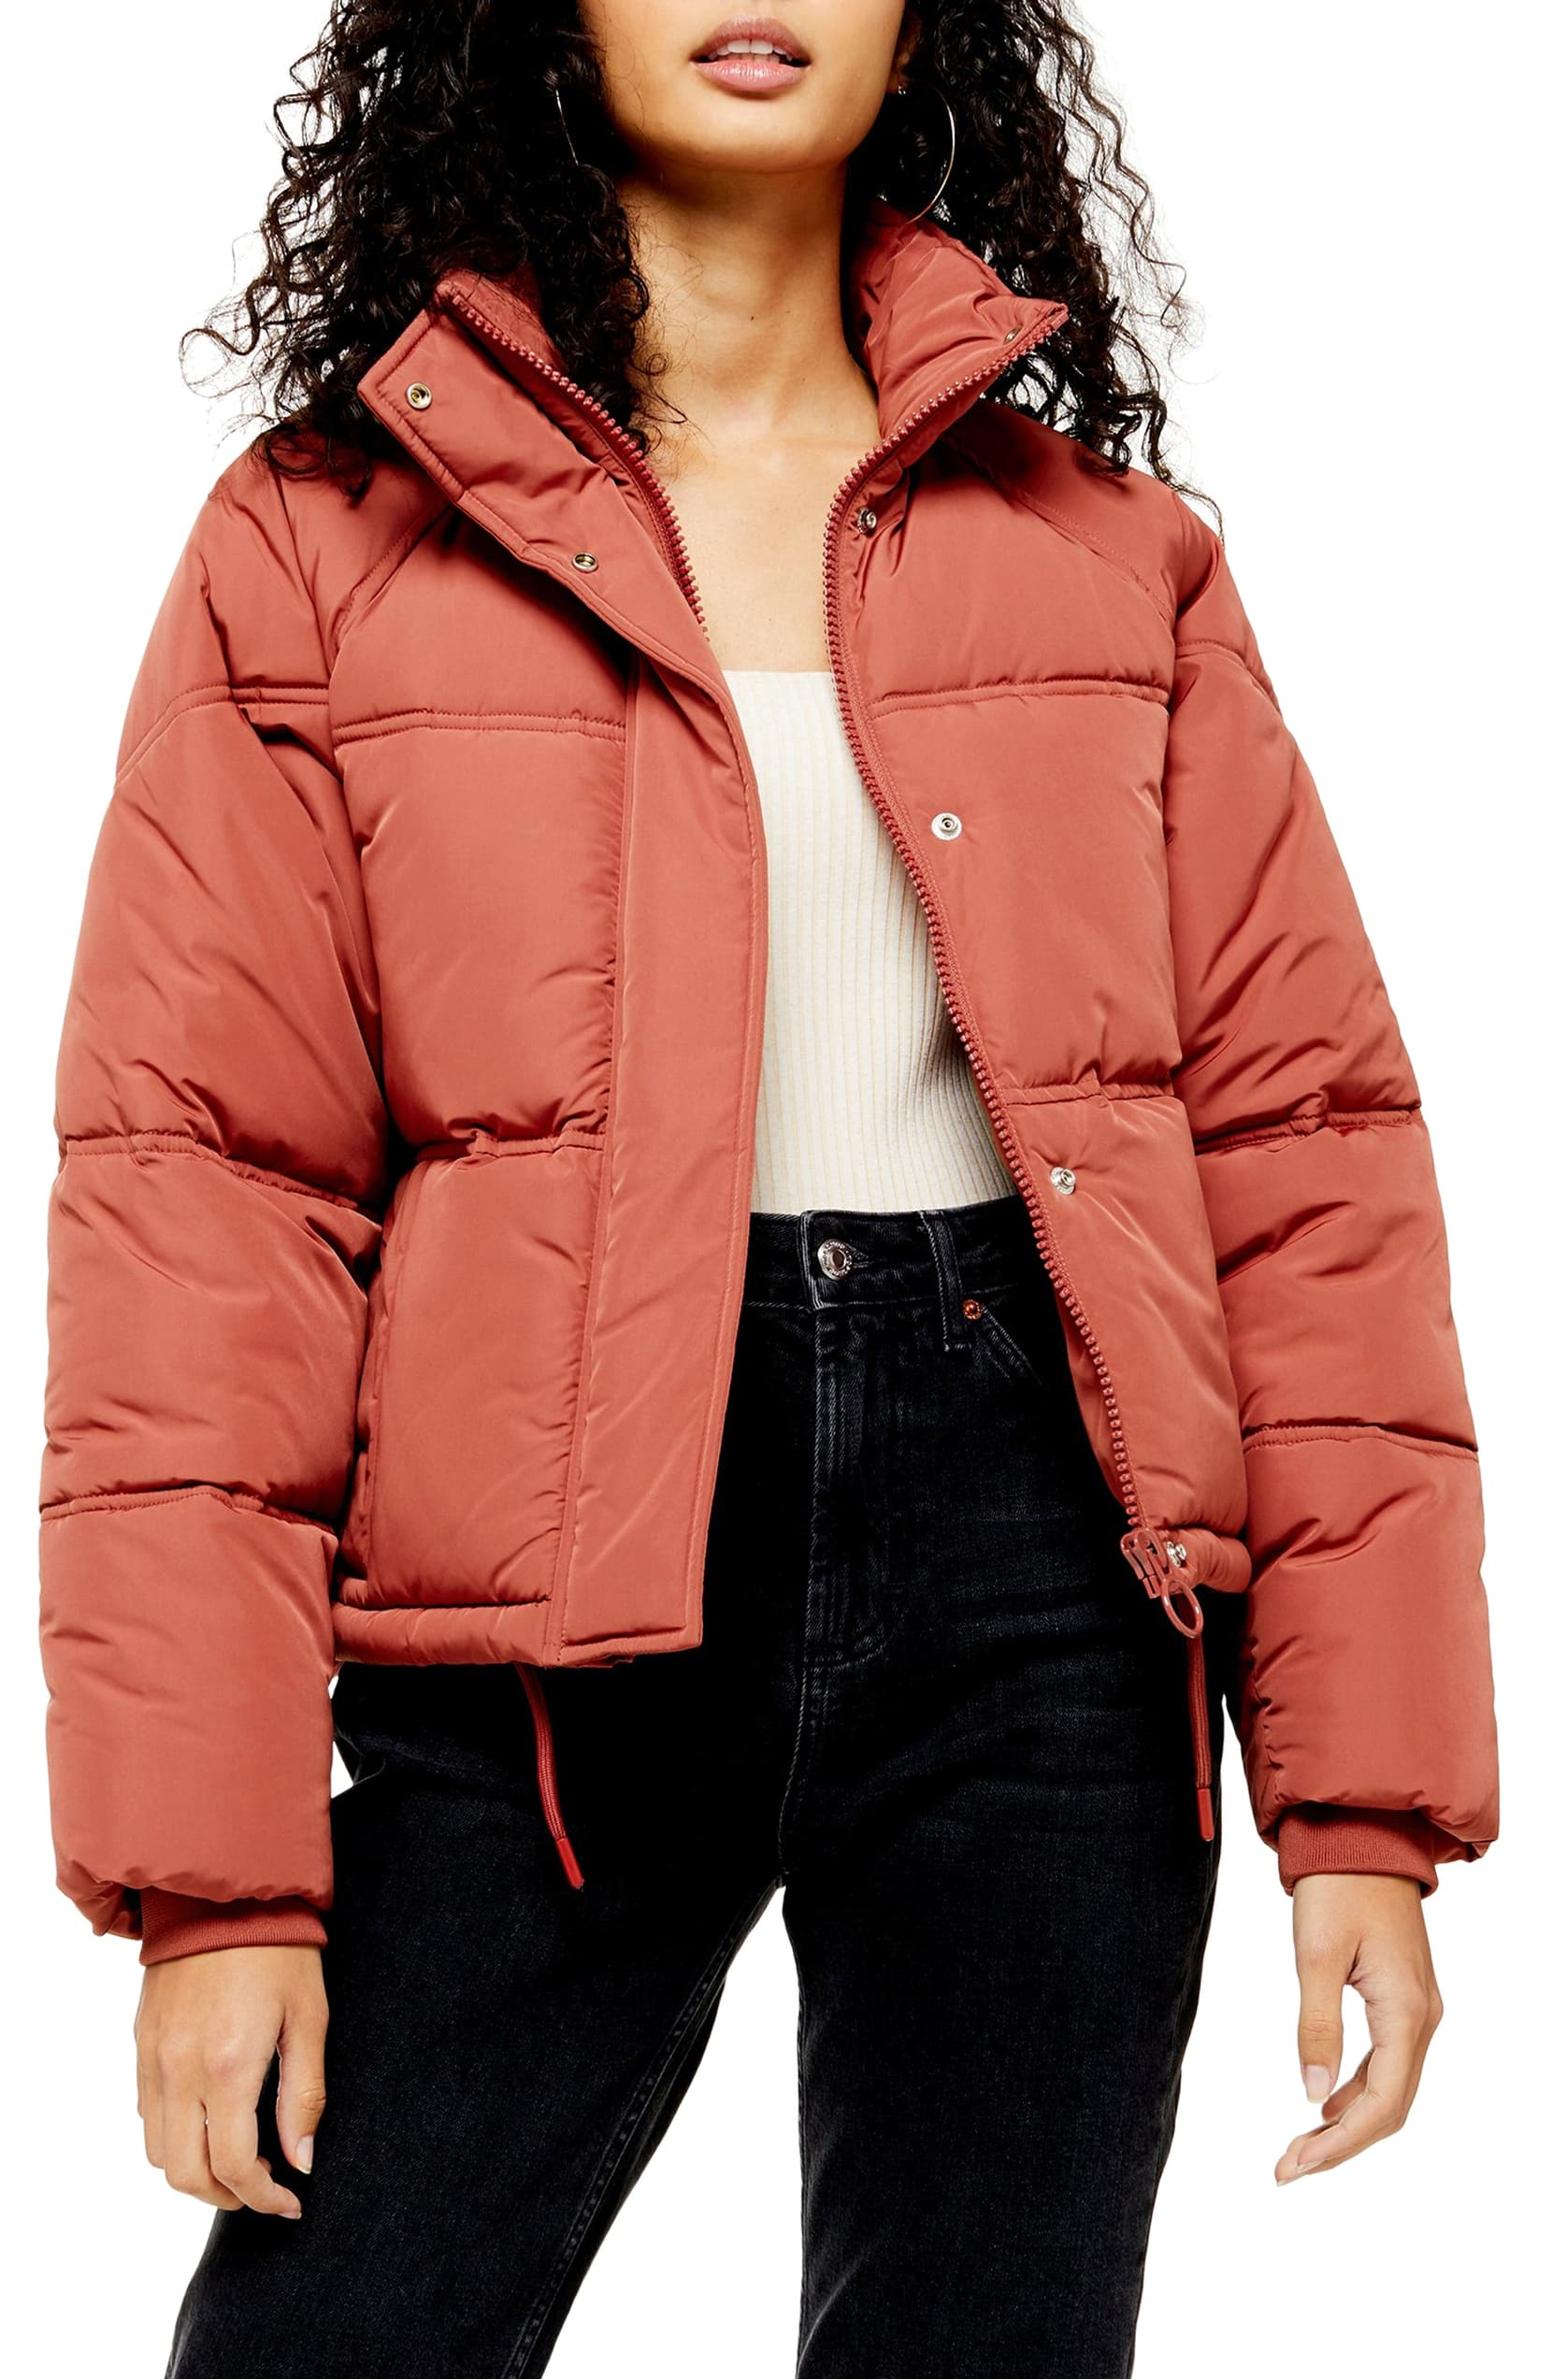 "<p>Stay warm in this perfectly puffed stand-collar jacket, cut in a modern cropped fit.{&nbsp;}<a  href=""https://shop.nordstrom.com/s/topshop-sasha-puffer-jacket/5451053/full?origin=category-personalizedsort&breadcrumb=Home%2FWomen%2FShop%20by%20Occasion%2FWinter%20Getaway&color=rose"" target=""_blank"" title=""https://shop.nordstrom.com/s/topshop-sasha-puffer-jacket/5451053/full?origin=category-personalizedsort&breadcrumb=Home%2FWomen%2FShop%20by%20Occasion%2FWinter%20Getaway&color=rose"">Shop it{&nbsp;}</a>- $100. (Image: Nordstrom){&nbsp;}</p>"